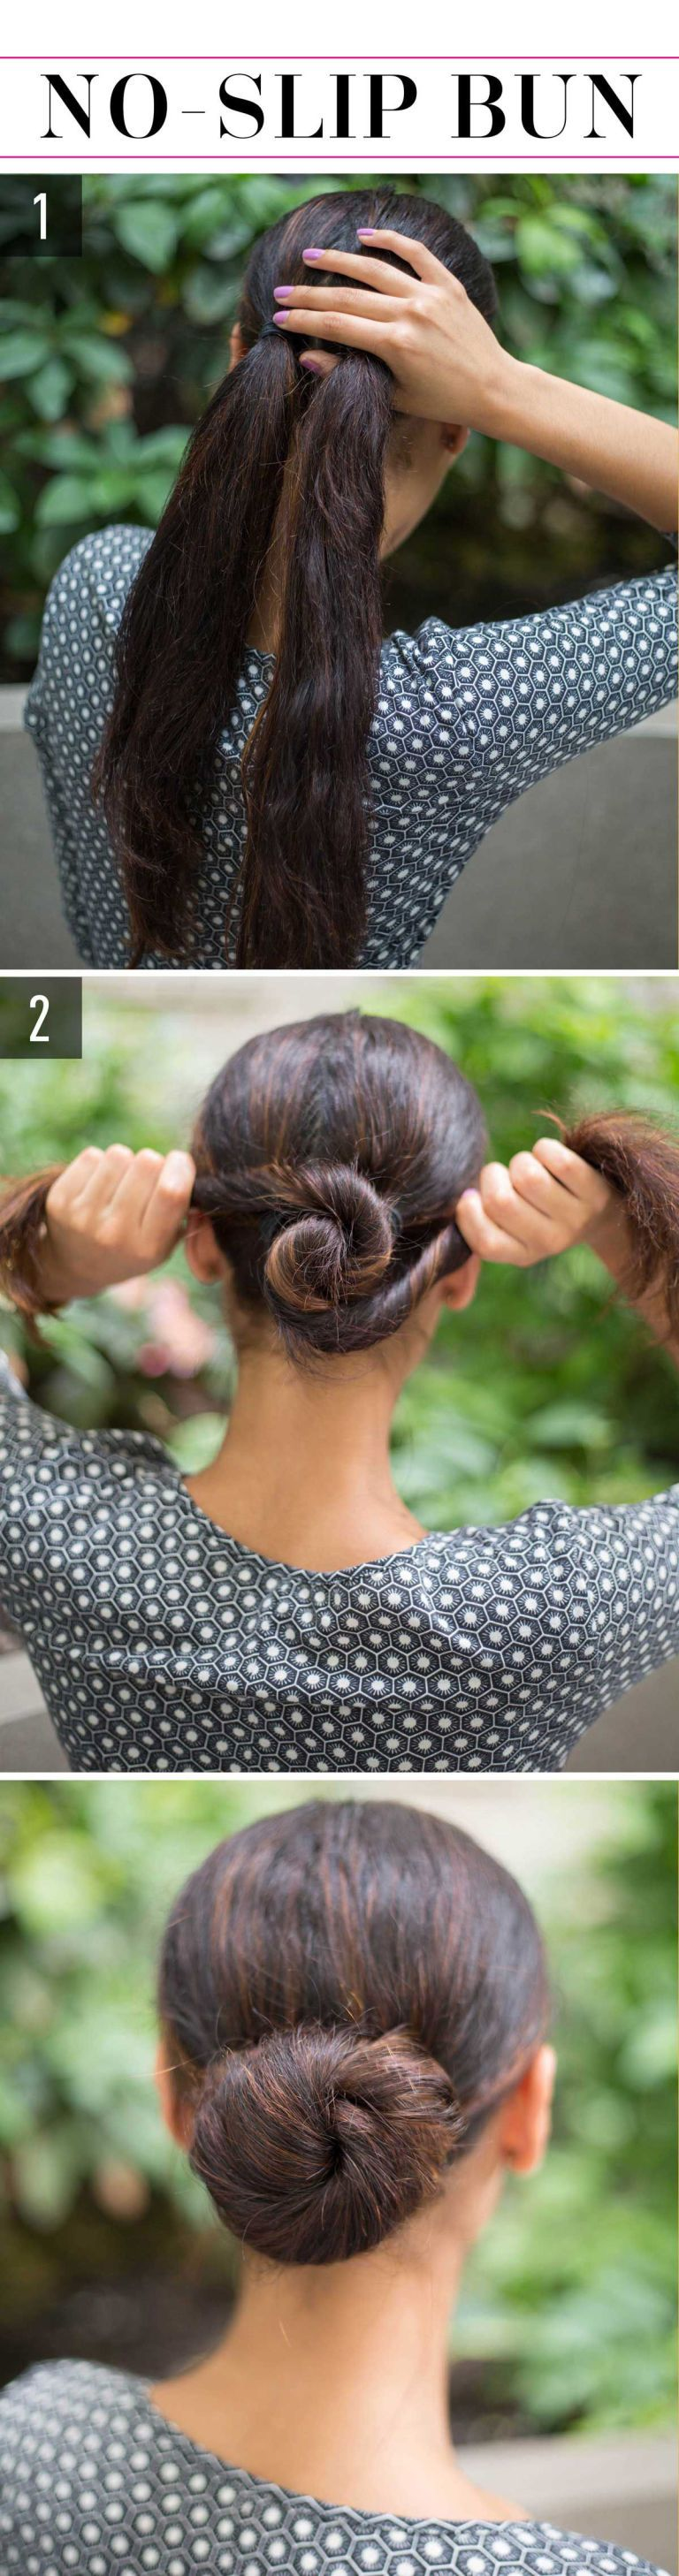 Astonishing 15 Super Easy Hairstyles For Lazy Girls Who Cant Even Beautiful Short Hairstyles Gunalazisus